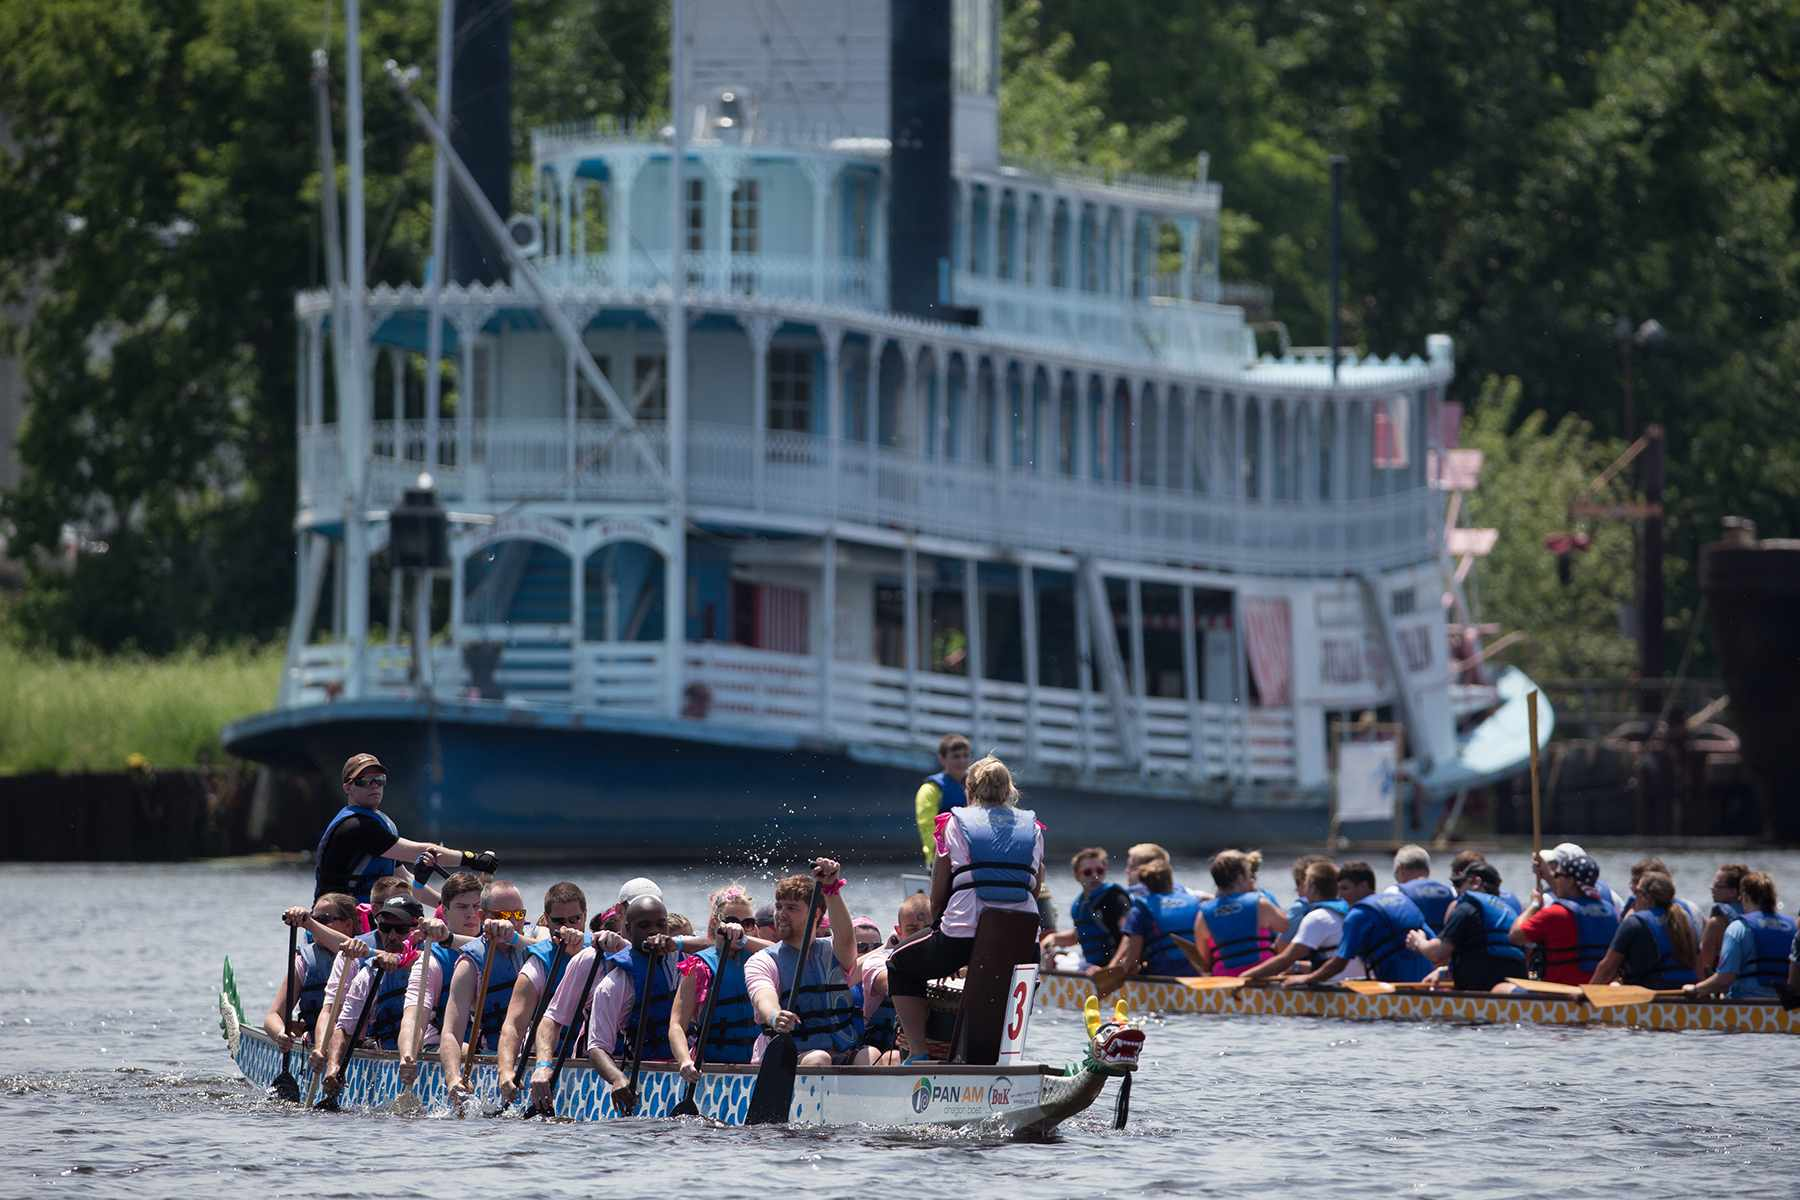 Mayo Clinic Health System Launches Dragon Boat Festivals in